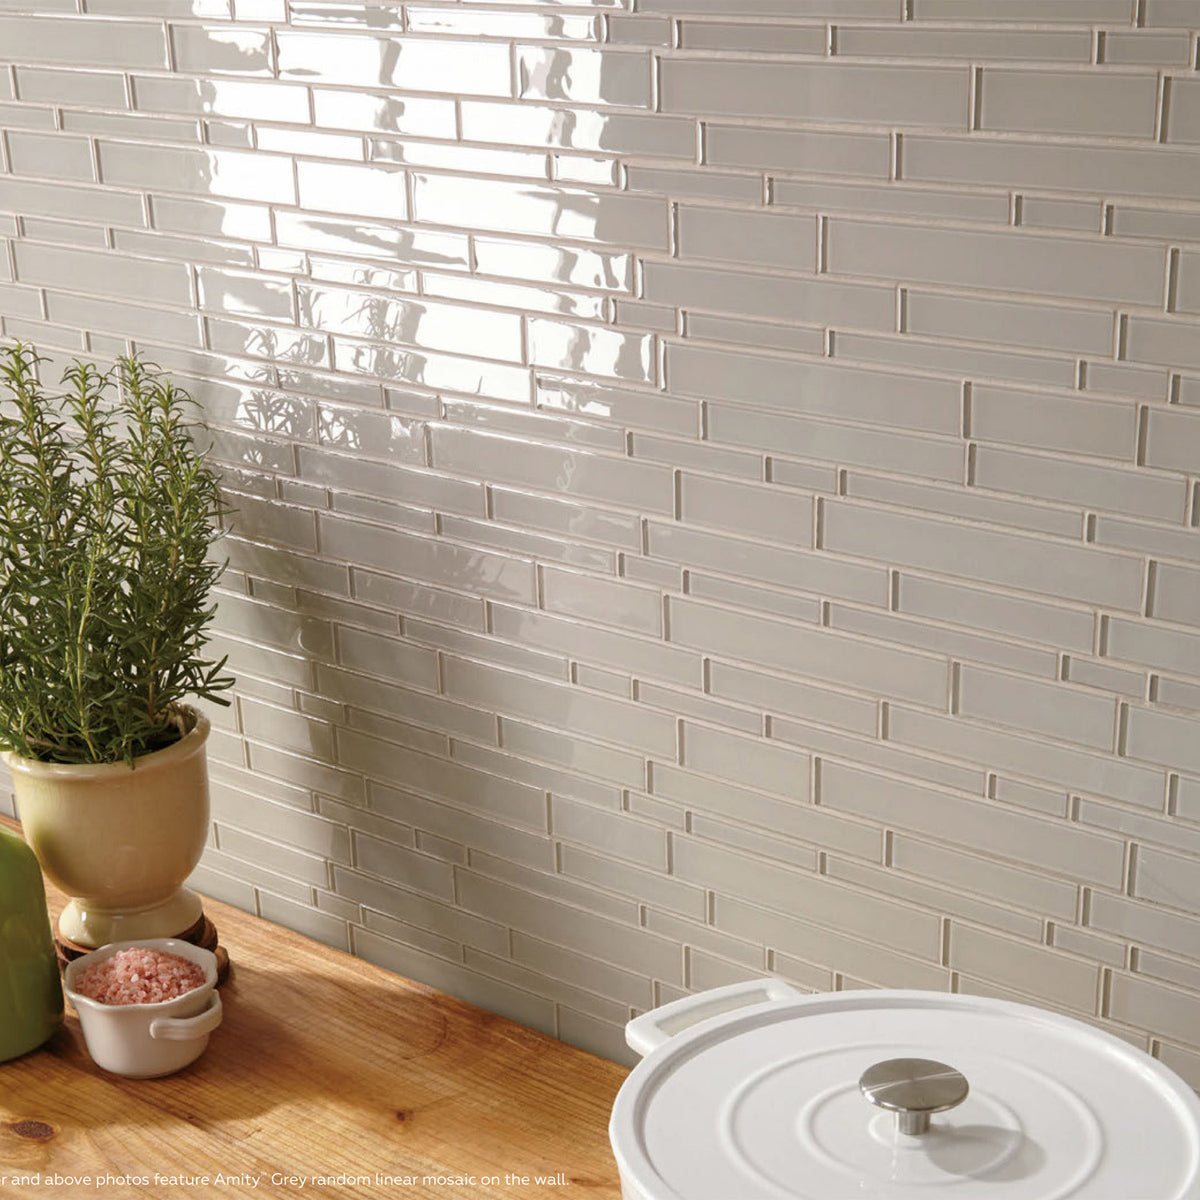 Daltile Amity Linear Mosaic Lifestyle